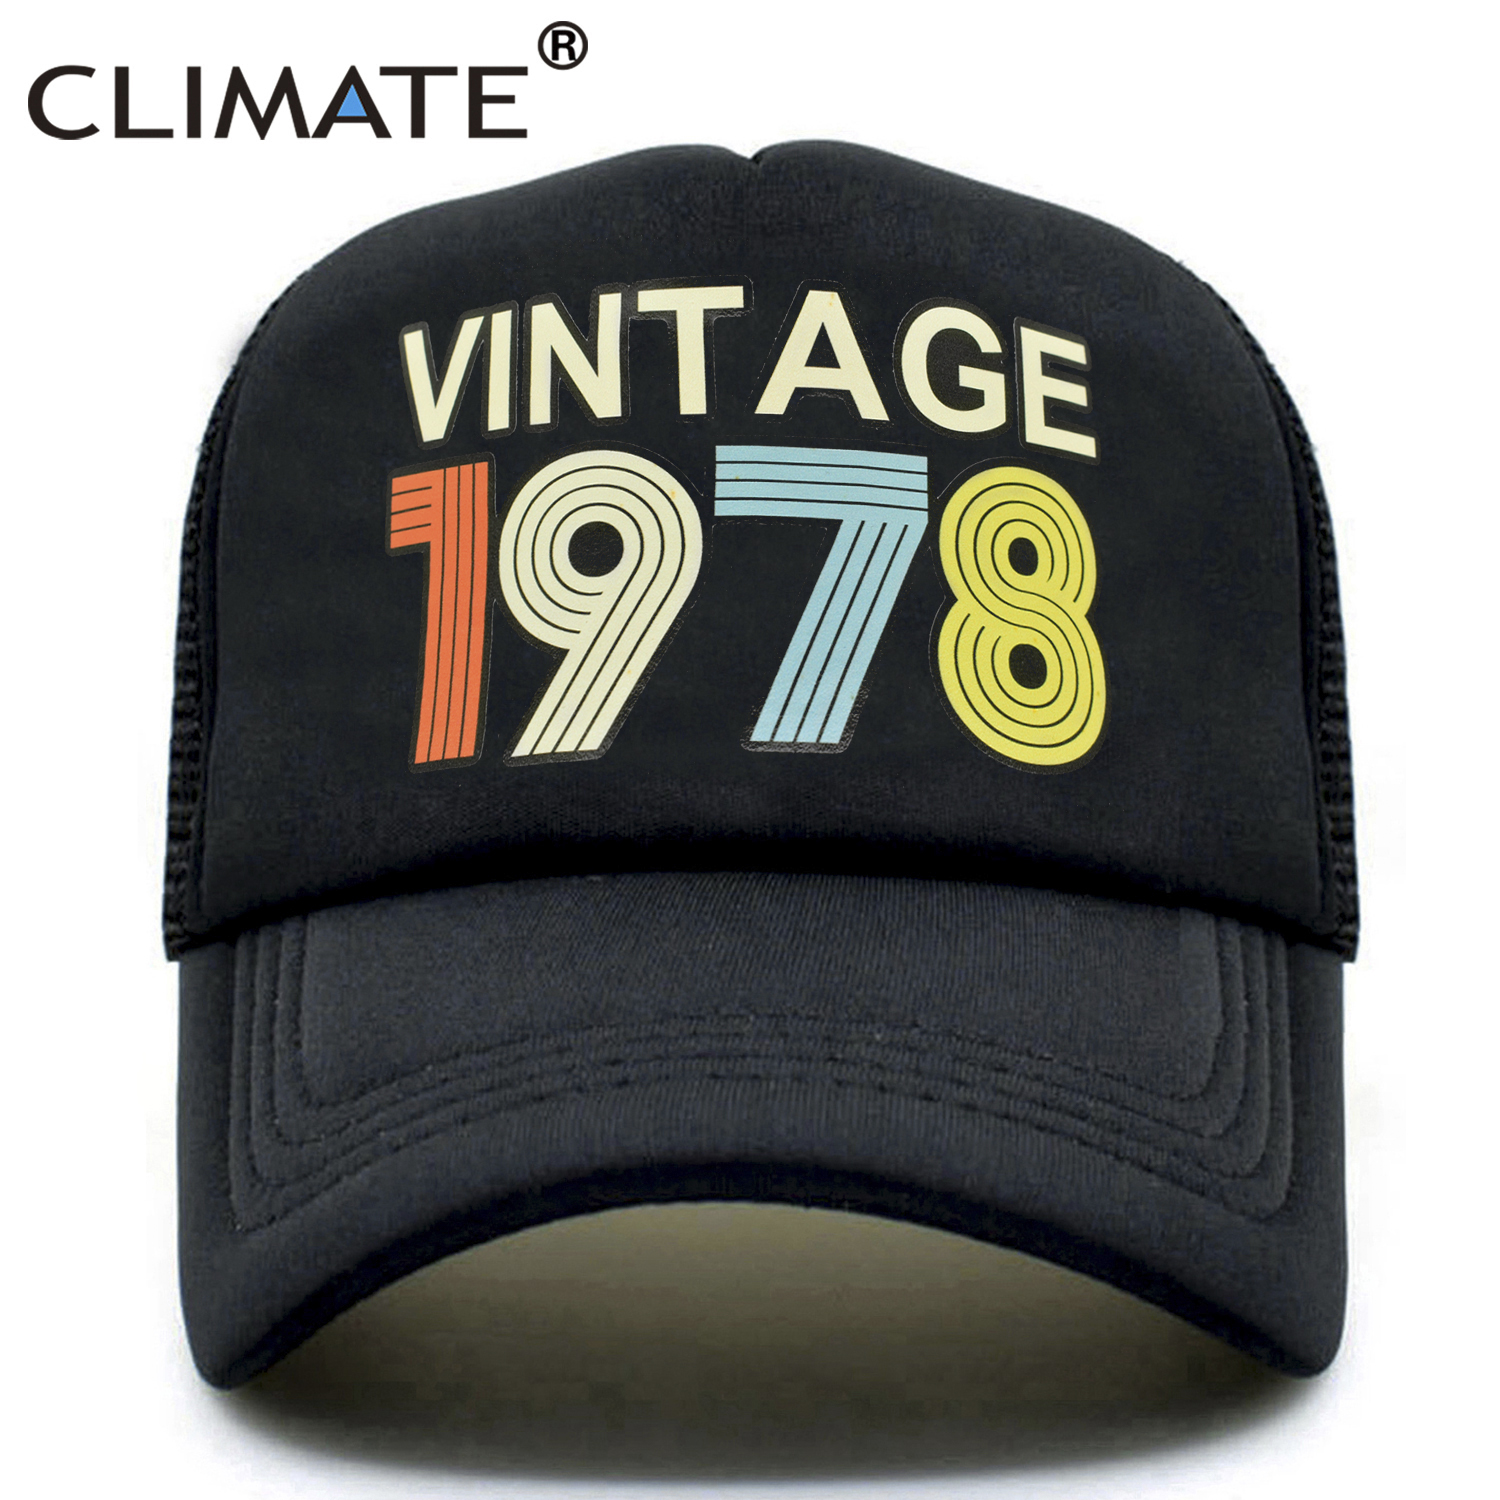 CLIMATE 1978   Cap   Vintage 1978 Vintage Trucker   Cap   Men Retro 40th Birthday Gift   Baseball     Caps   Black Cool Trucker   Caps   Hat for Men